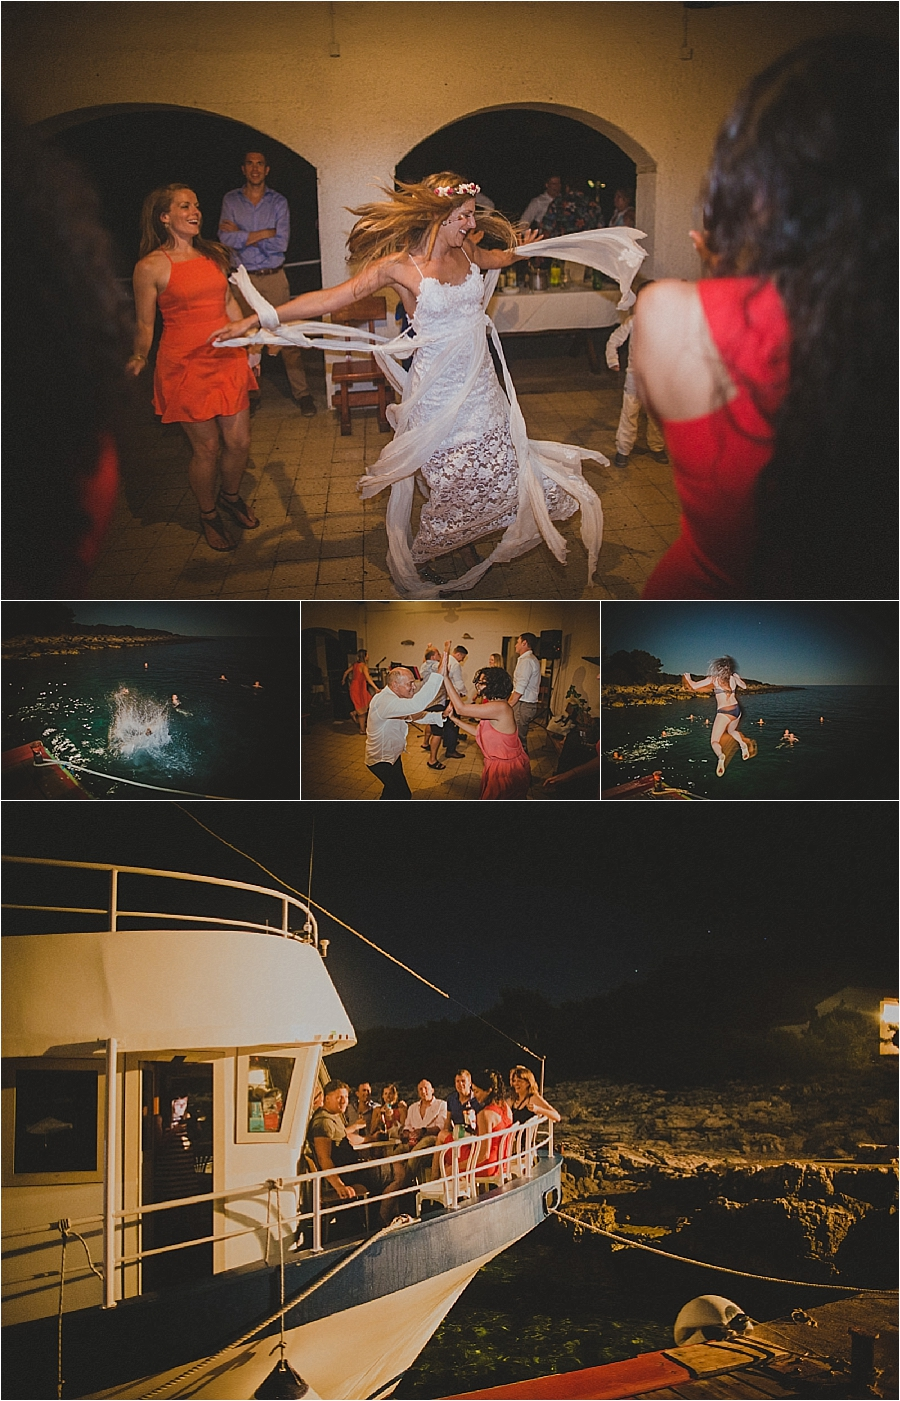 The wedding guests party on a boat after a beach wedding in Croatia by Matija Kljunak Weddings